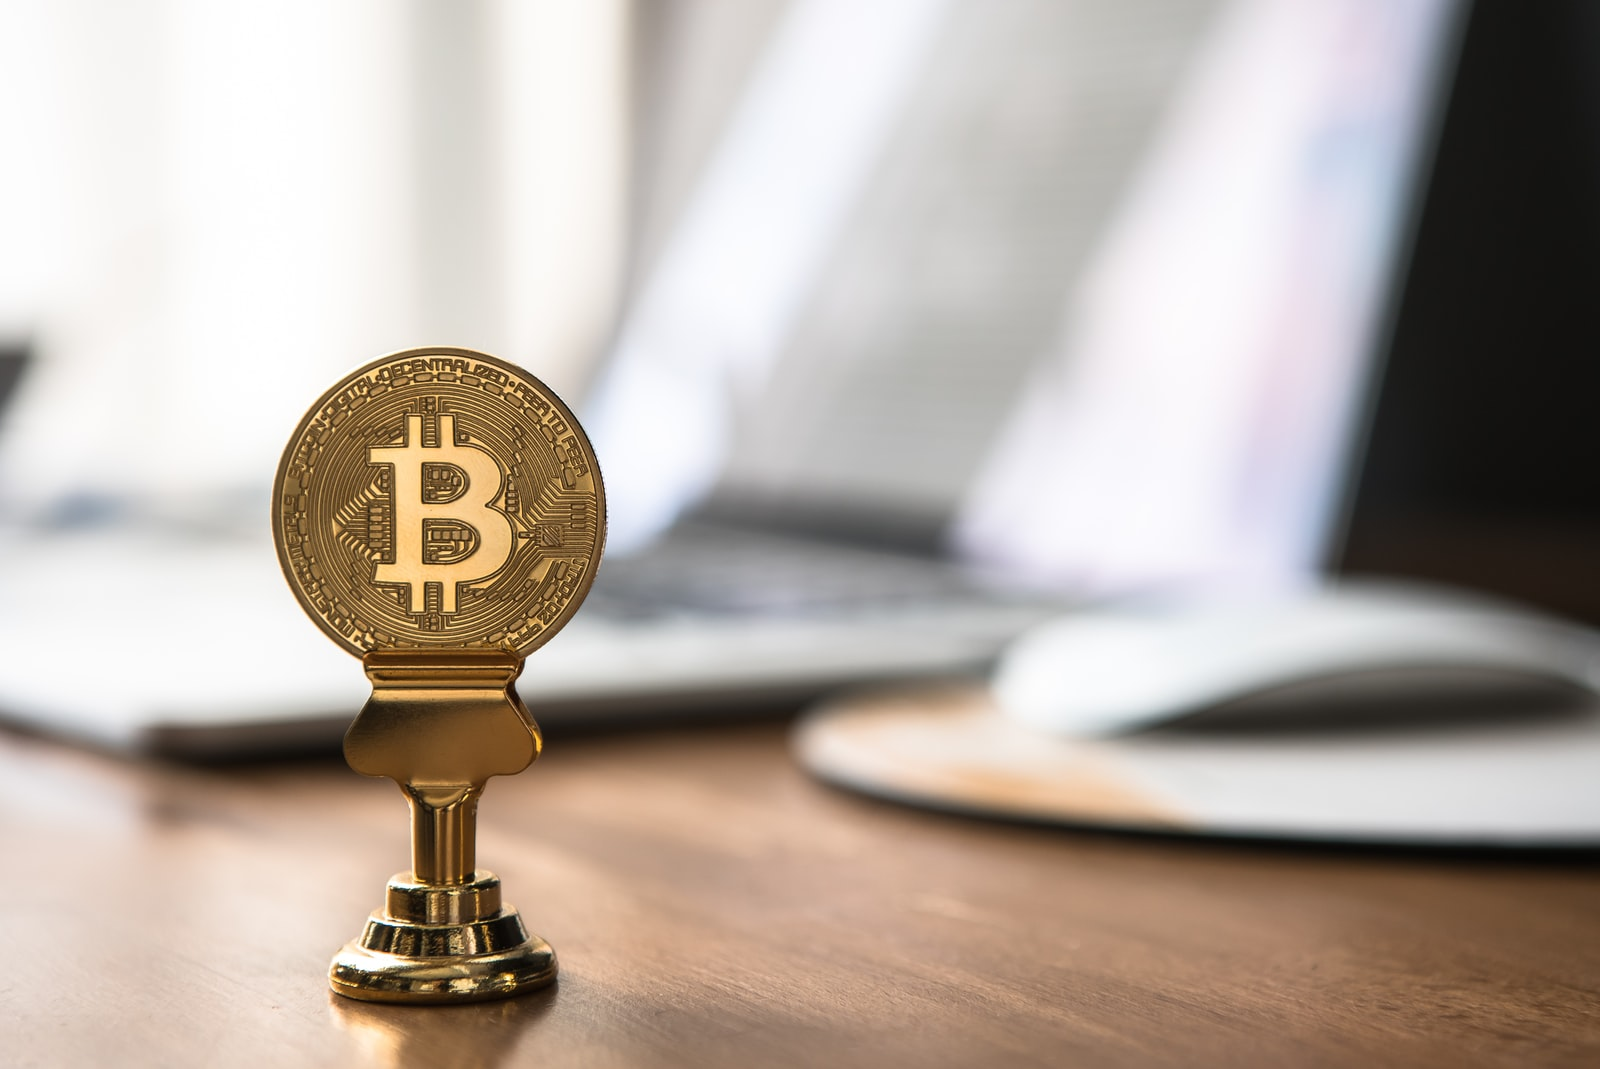 Is eBay open to accepting cryptocurrencies